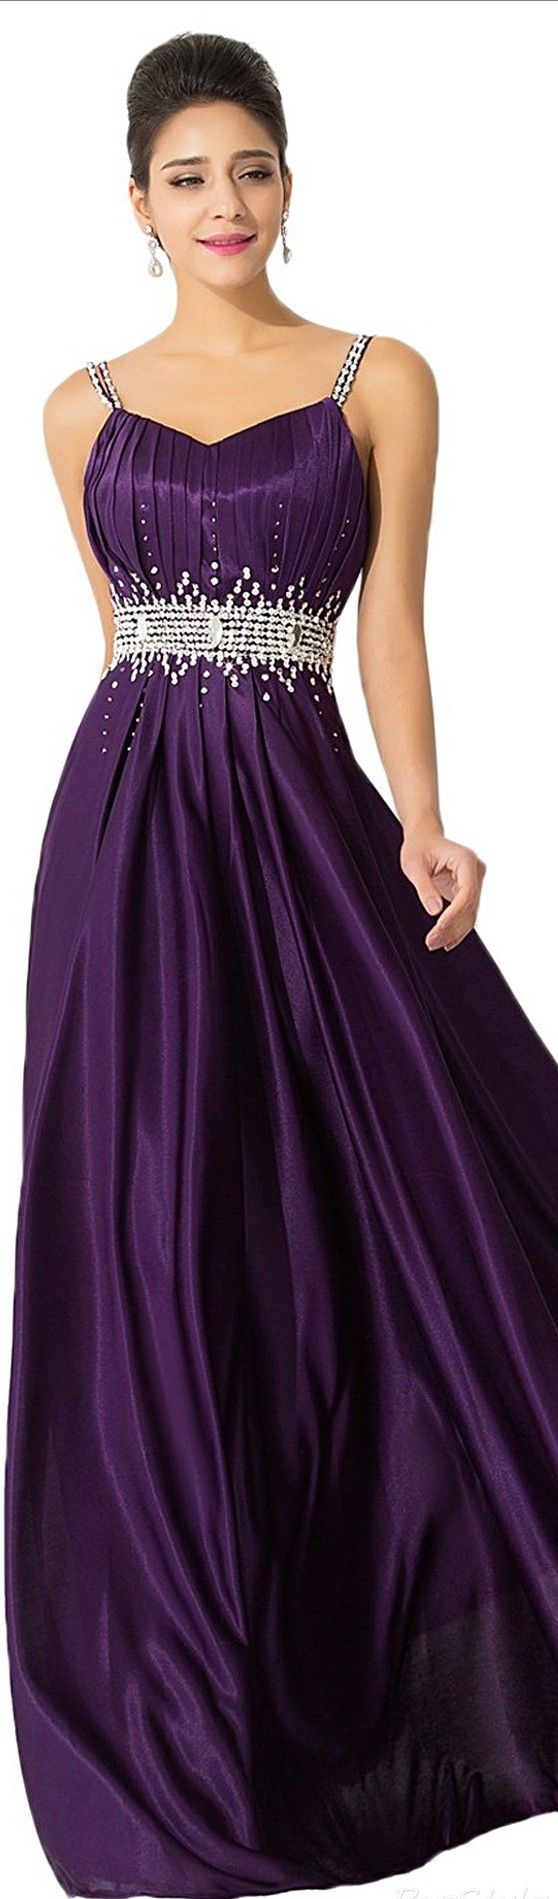 SUNVARY ¤ In Royal Purple Long Flowing Skirt w. Beaded Waist Bund w. Star at Stomach & Spaghetti Straps & Clean Halter Top of Formal Gown ¤ Suggested Price: $65.69 – $95.69 USD ¤ Color: Purple (others may be available) ¤ See Dress Availability: (AMAZON).